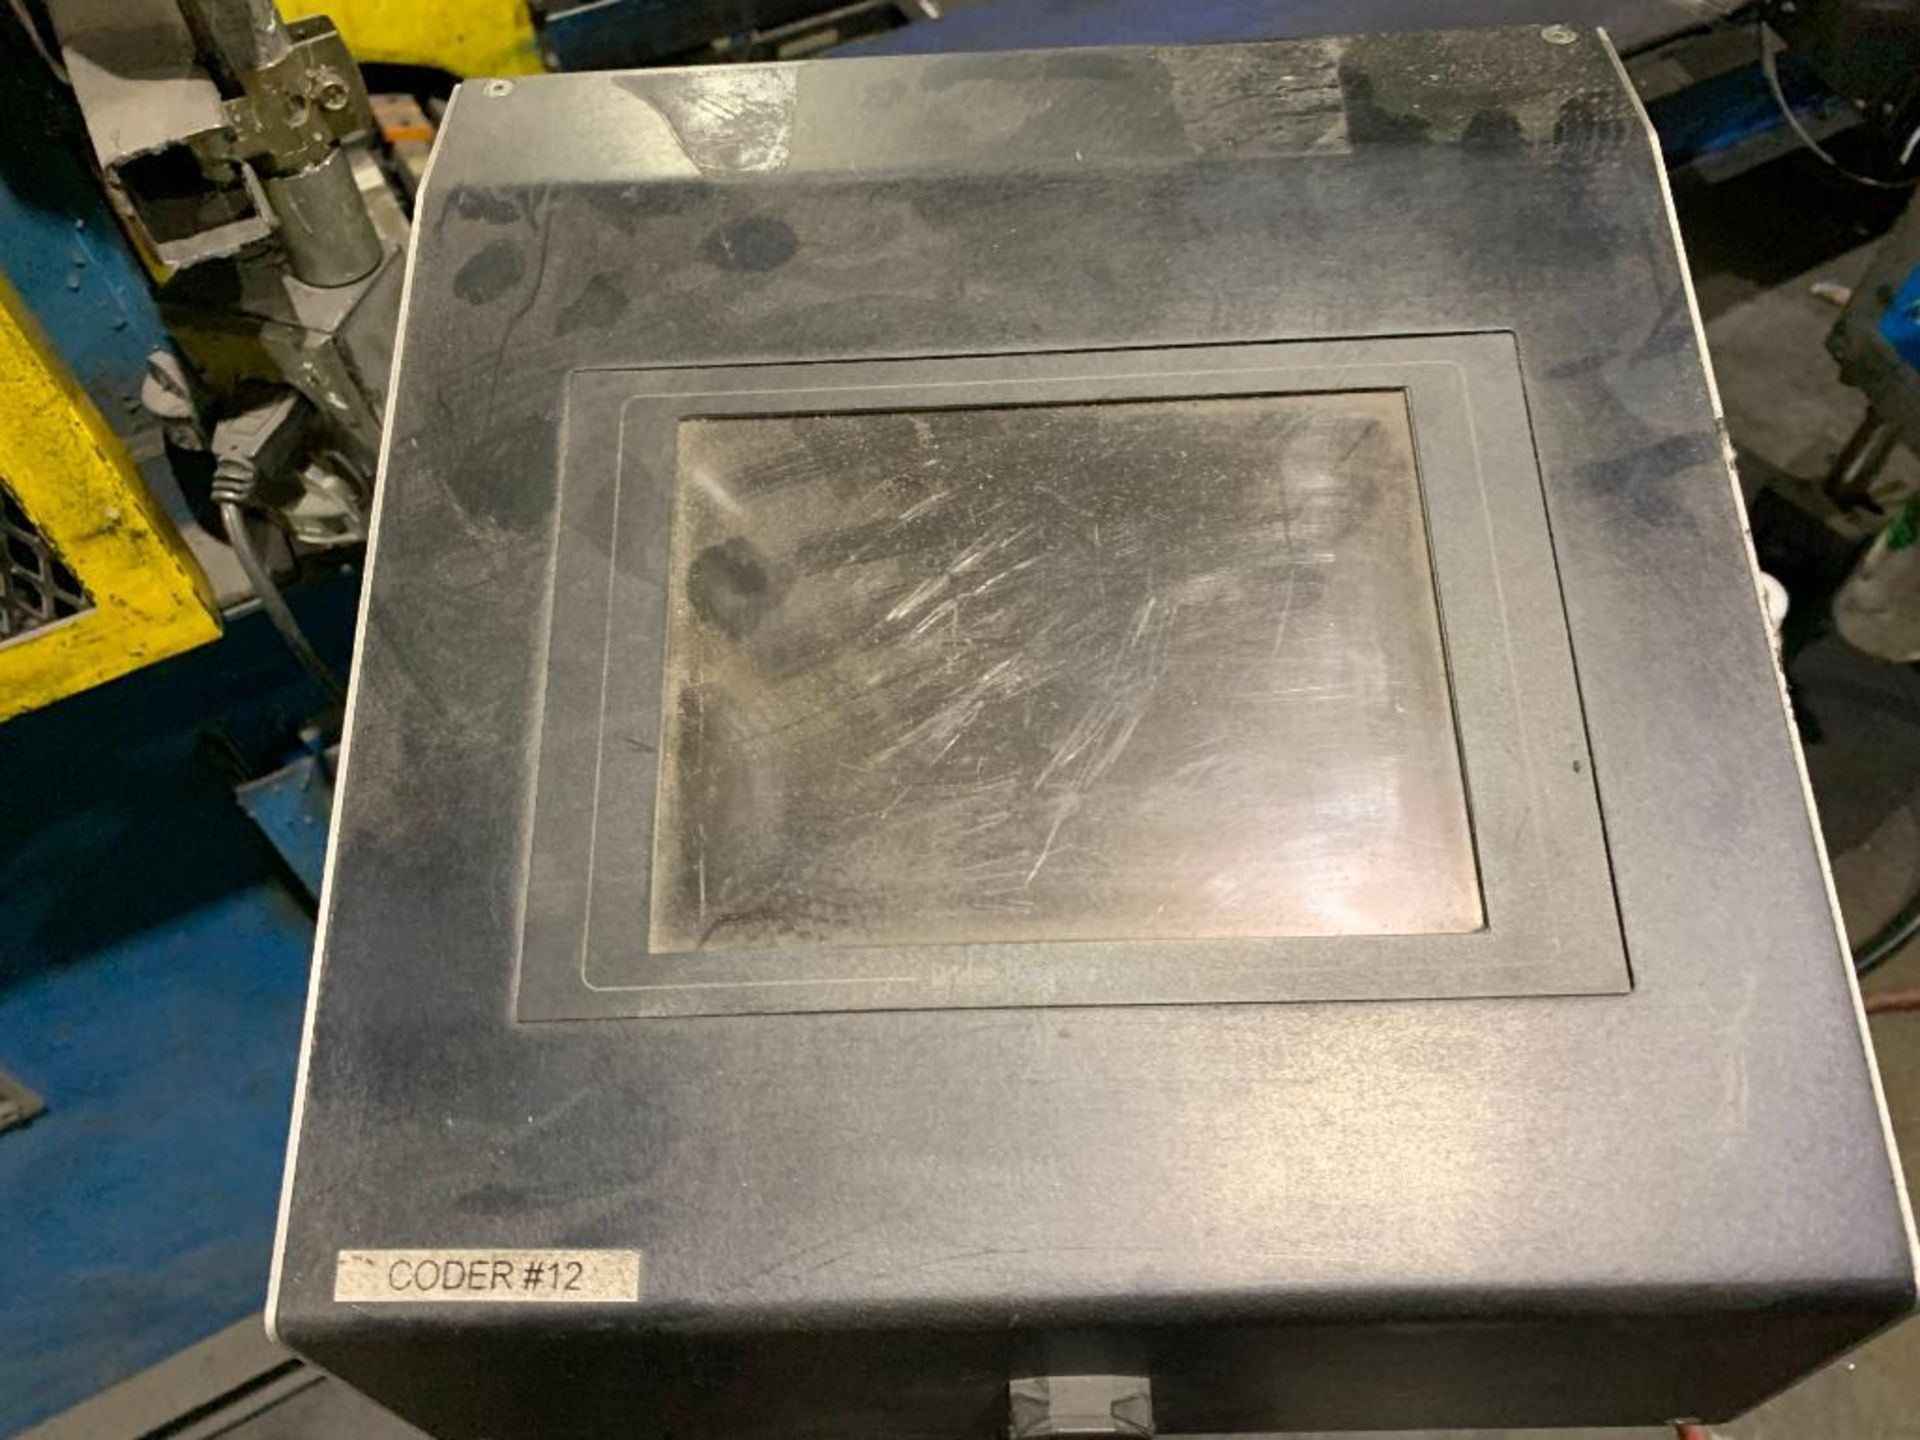 Automatic Printing Systems case coder - Image 11 of 18